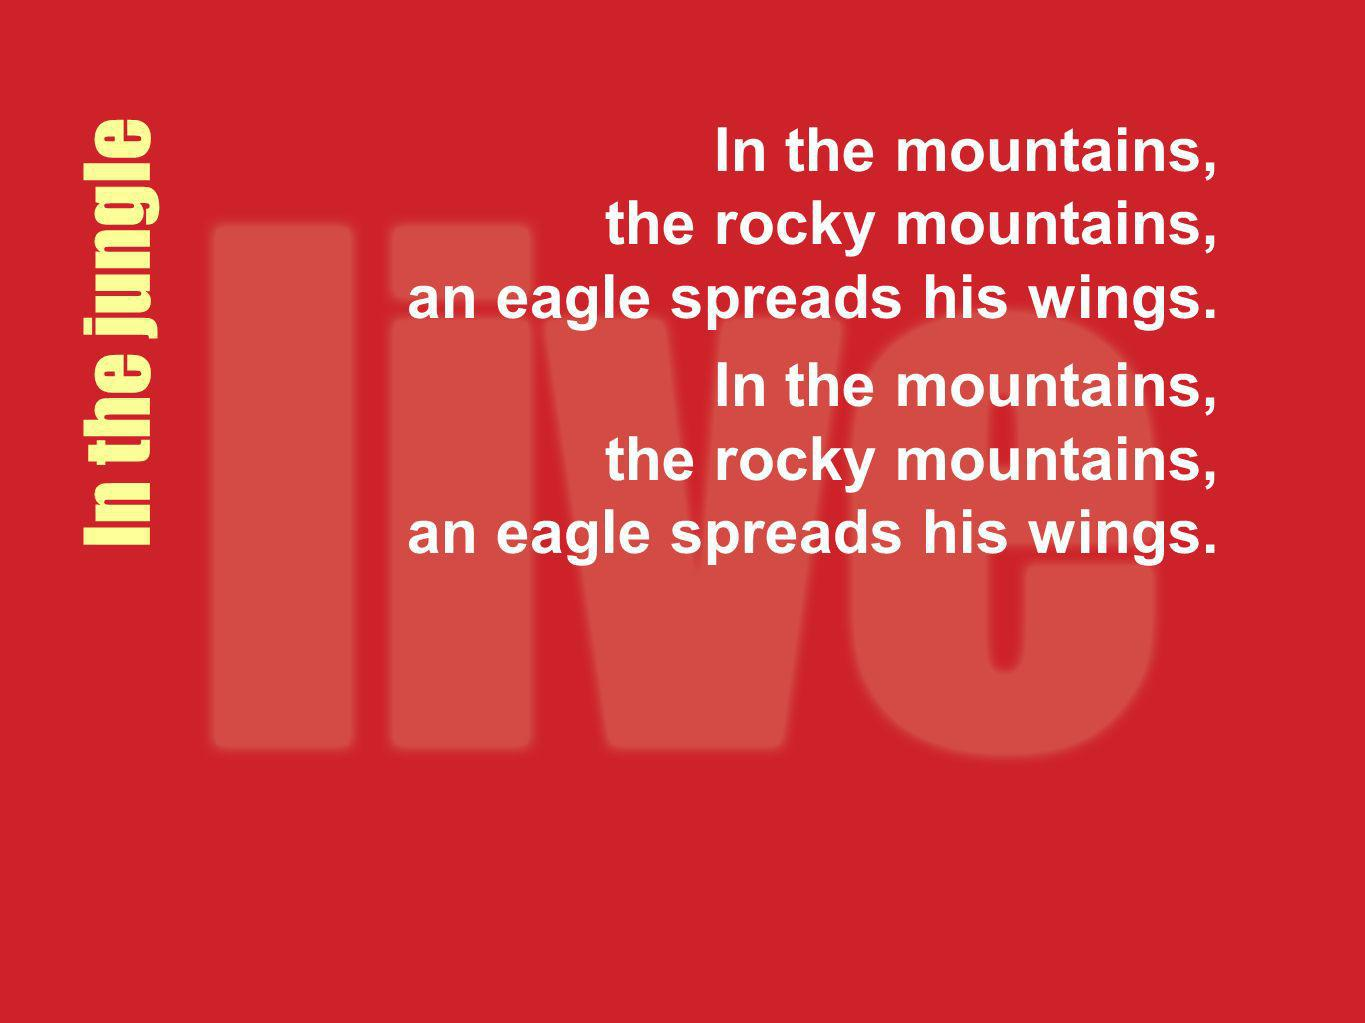 In the mountains, the rocky mountains, an eagle spreads his wings. In the jungle